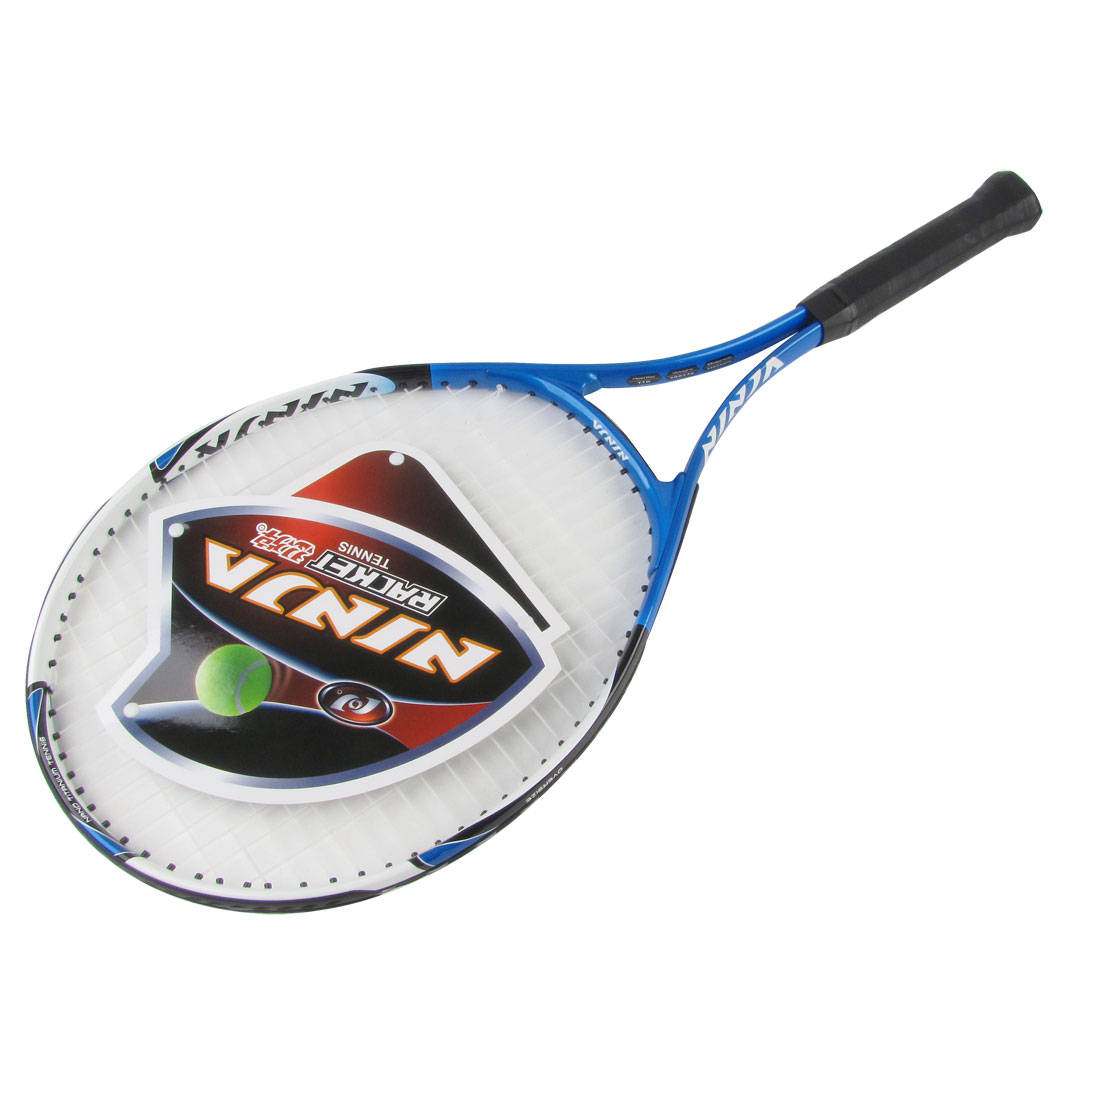 Nonslip Handle White Netting Black Blue Handle Tennis Racket 35cm x 27cm